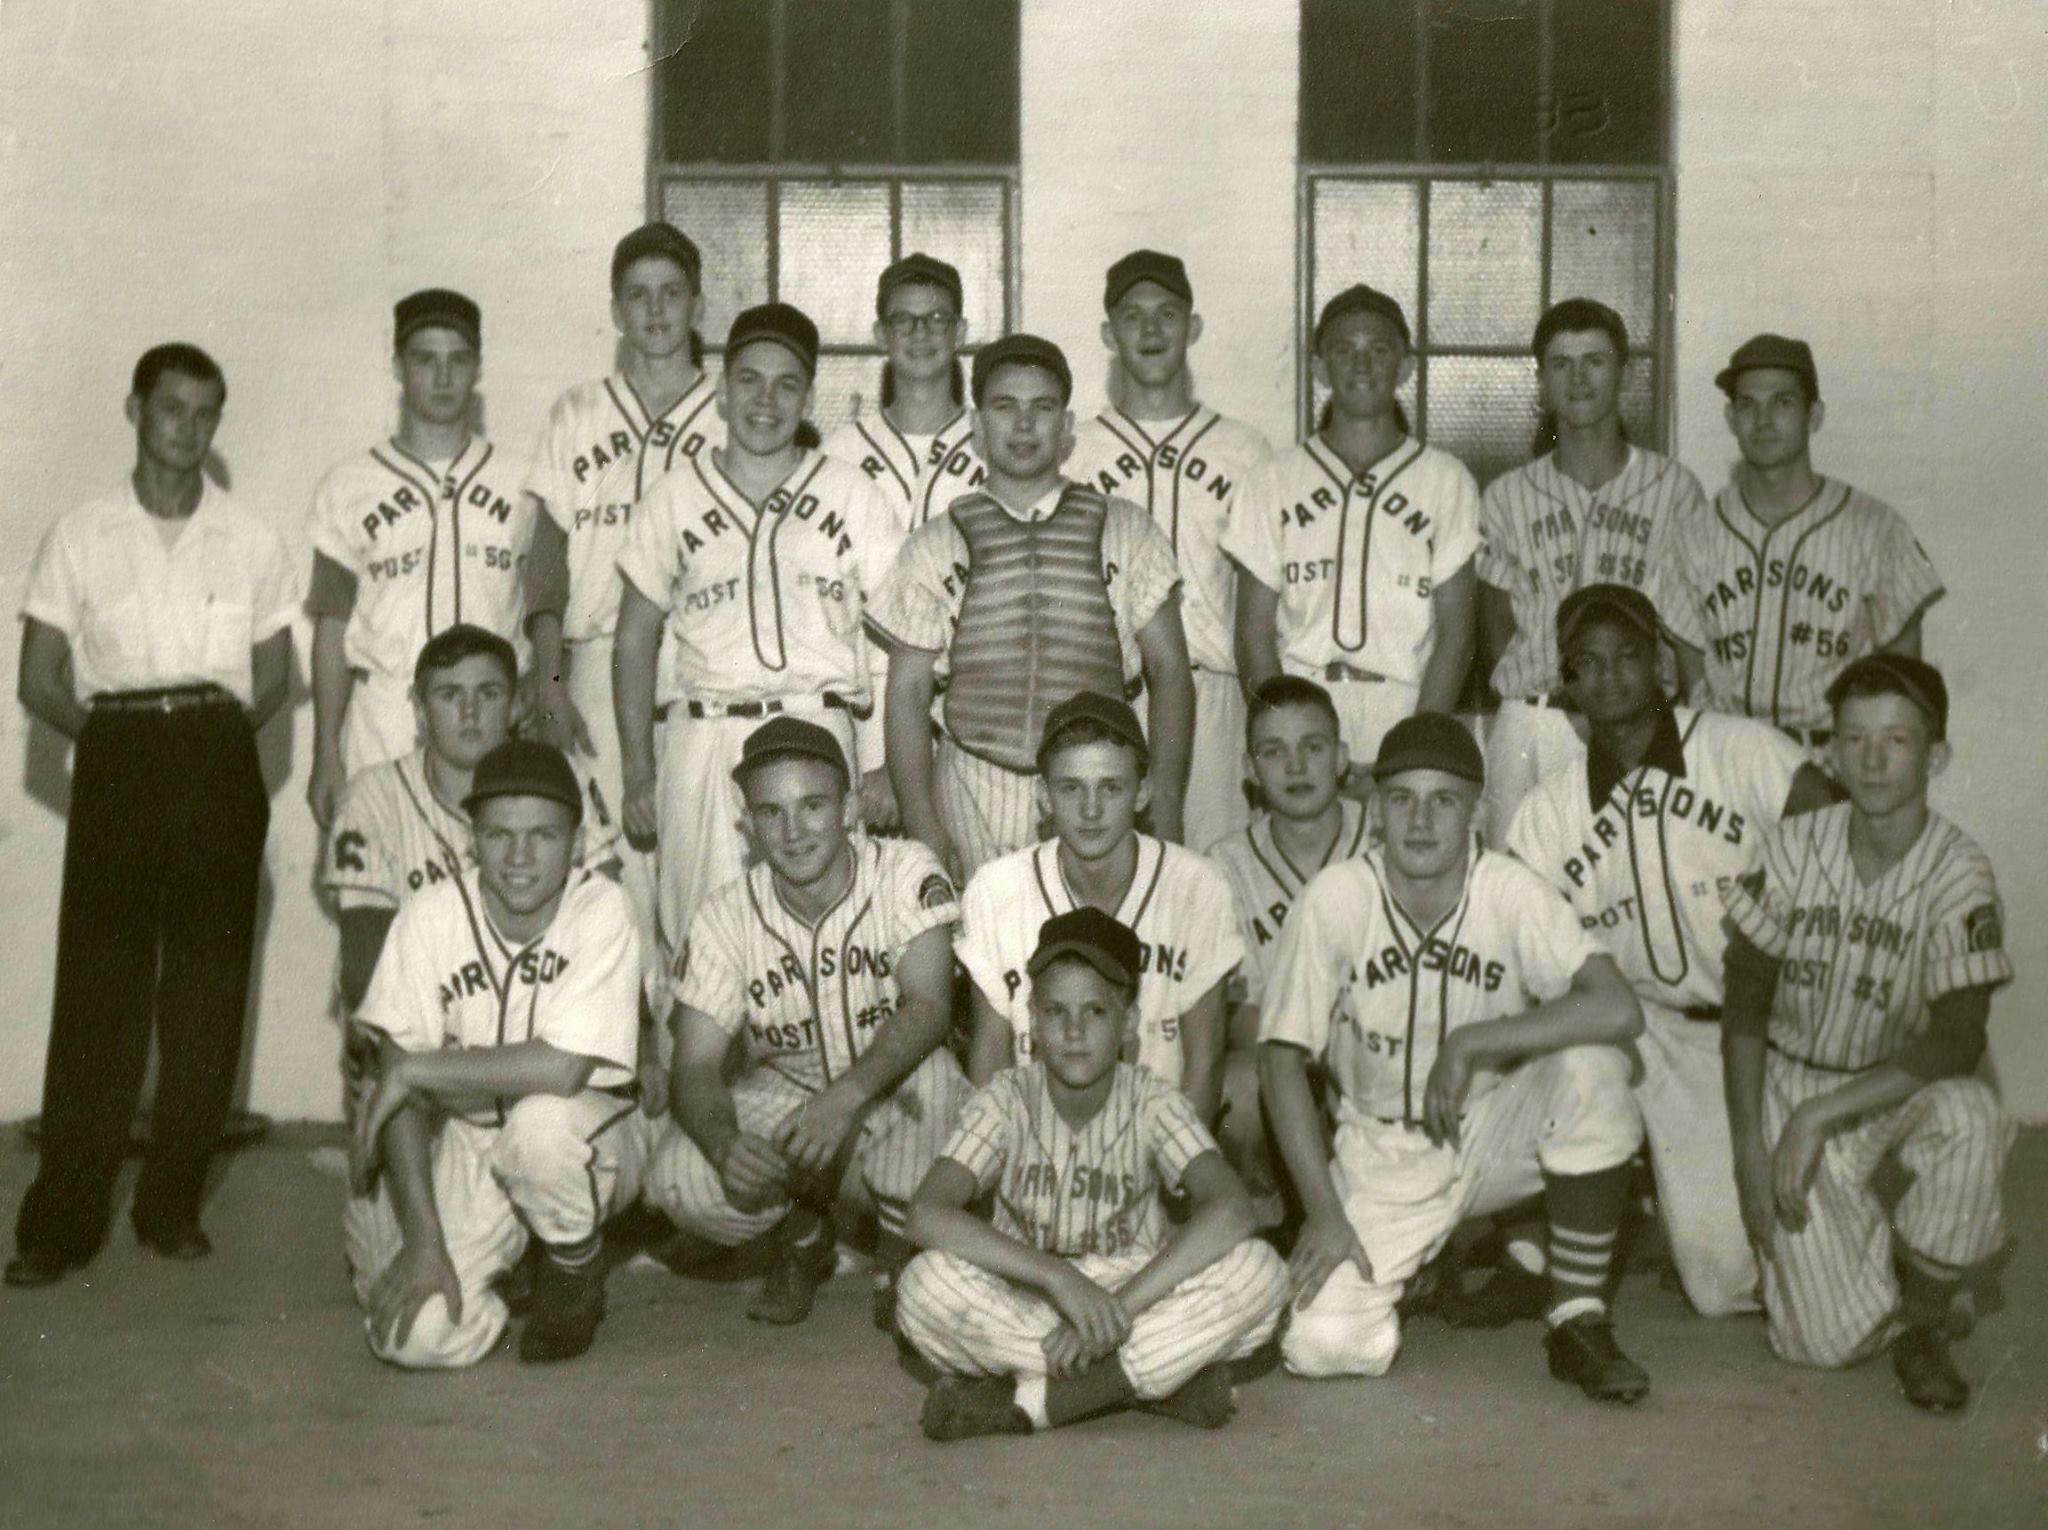 #46 PARSONS 1956 AMERICAN LEGION CHAMPIONSHIP BASEBALL TEAM - THE ST. LOUIS CARDINALS IN PARSONS KANSAS IN 1918